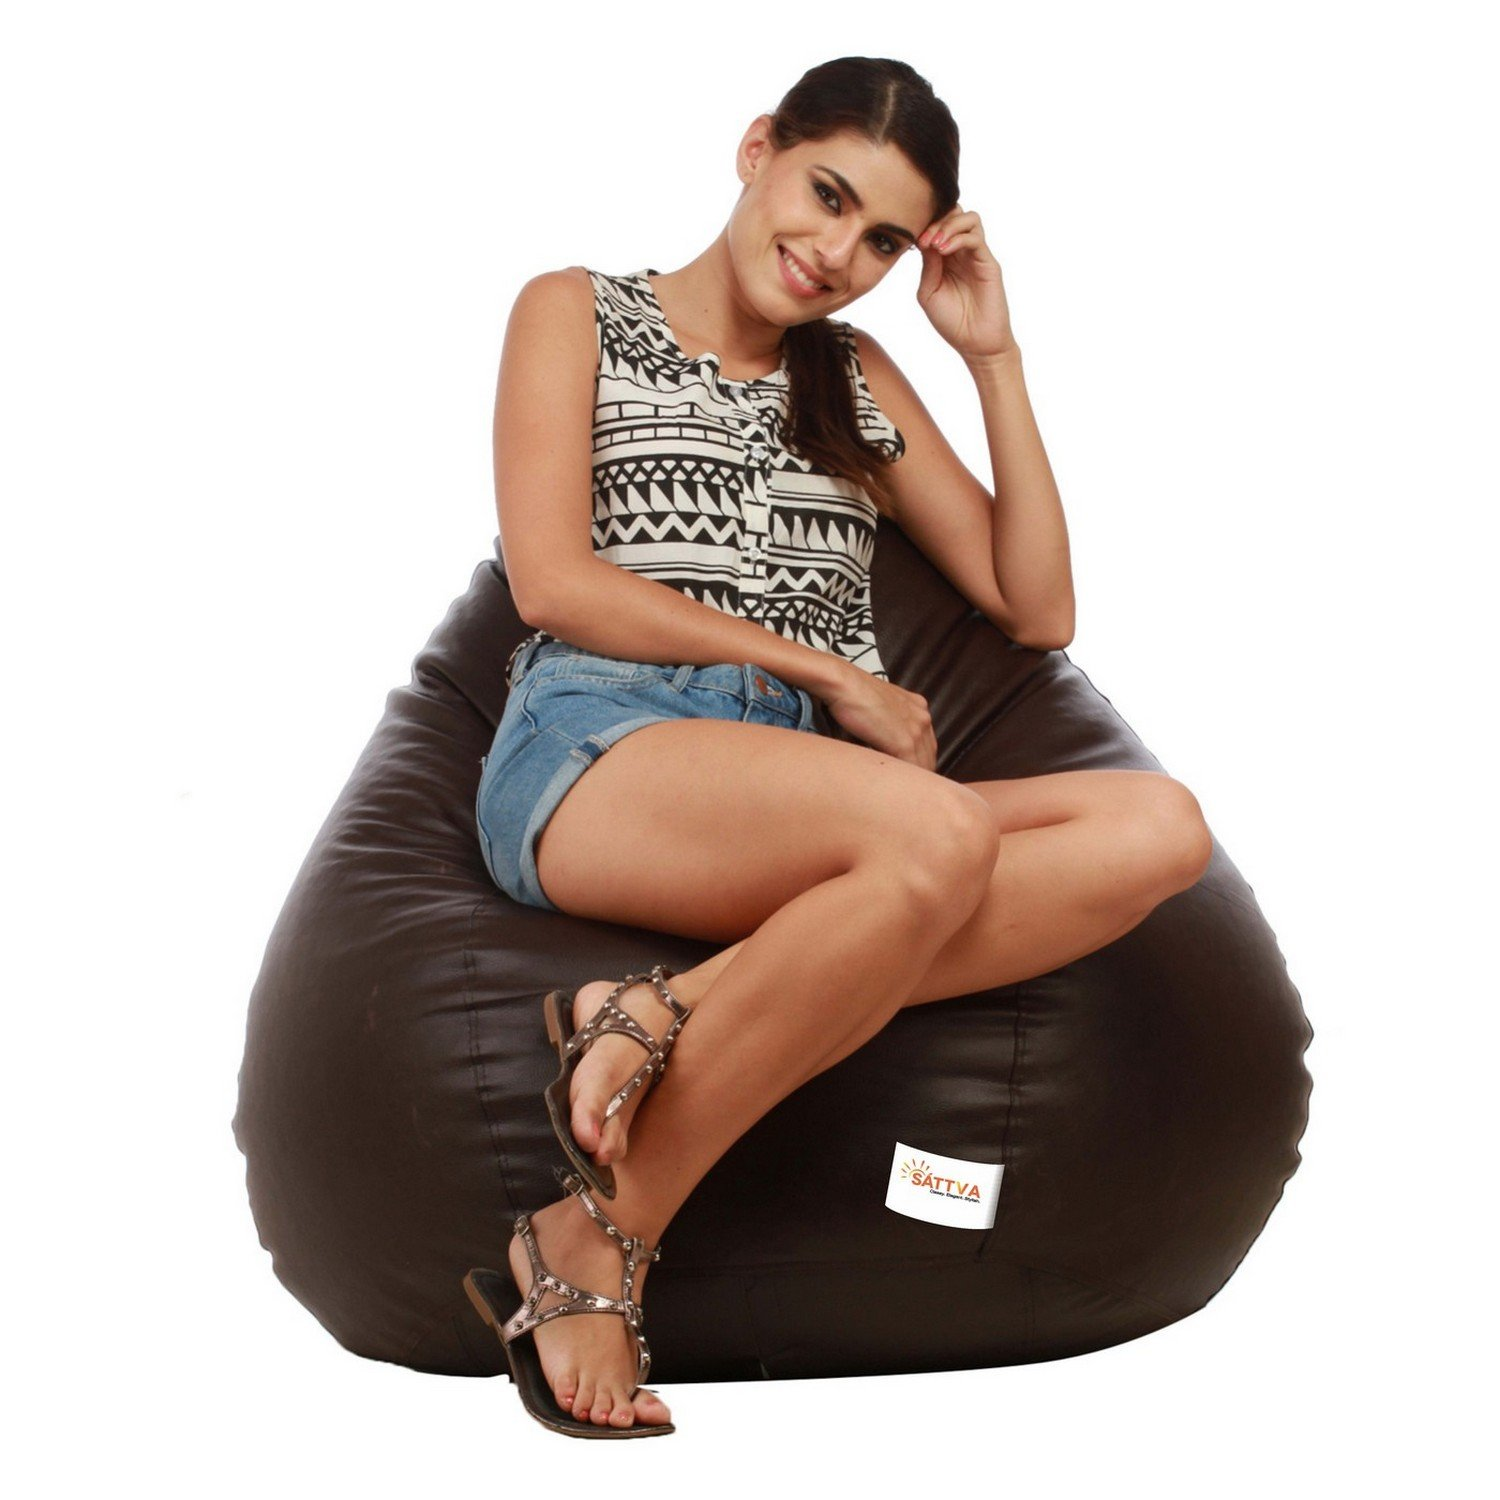 Sattva Classic XXL Bean Bag Without Beans (Brown)